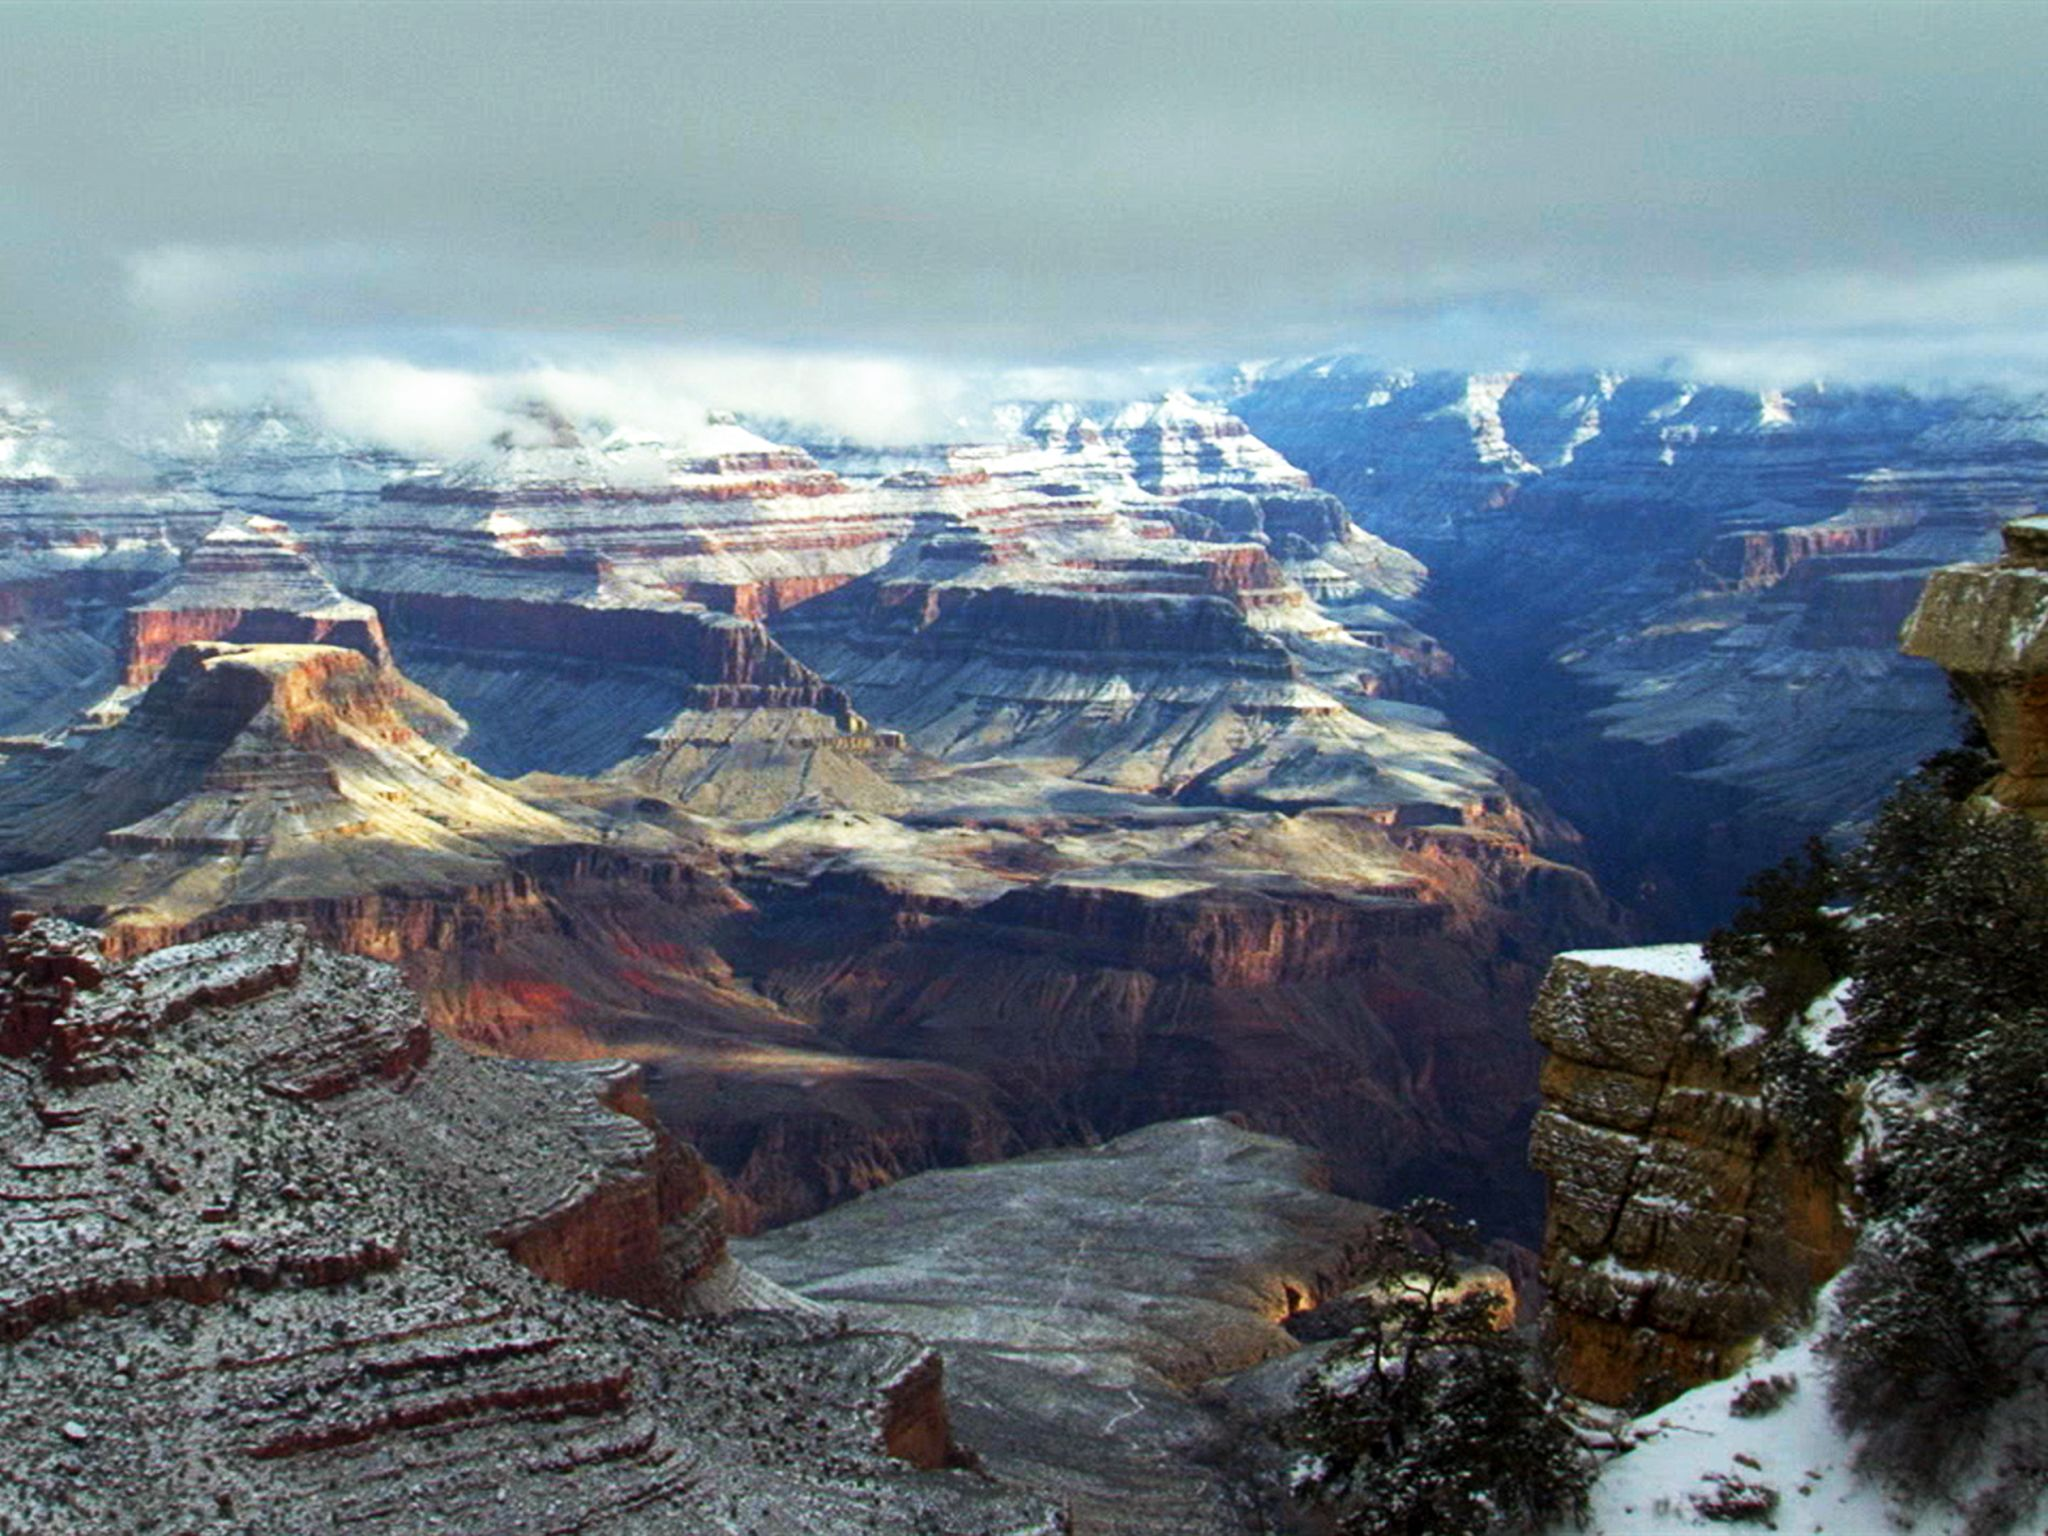 Grand Canyon National Park, Ariz.: Winter is a peaceful time in the Grand Canyon National Park. T... [Photo of the day - فوریه 2016]